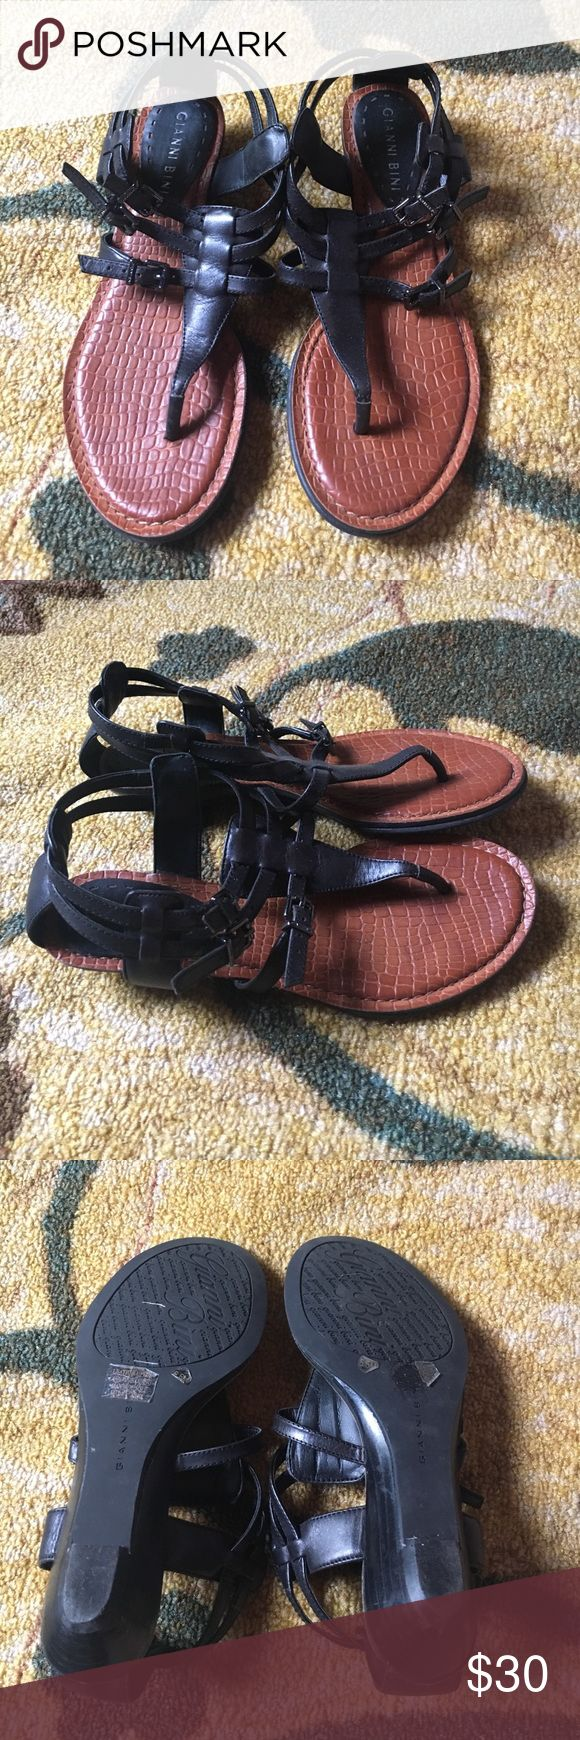 Gianni Bini Gladiator Sandals Worn a few times. Adjustable straps. Leather upper. Small wedge heel. Gianni Bini Shoes Sandals